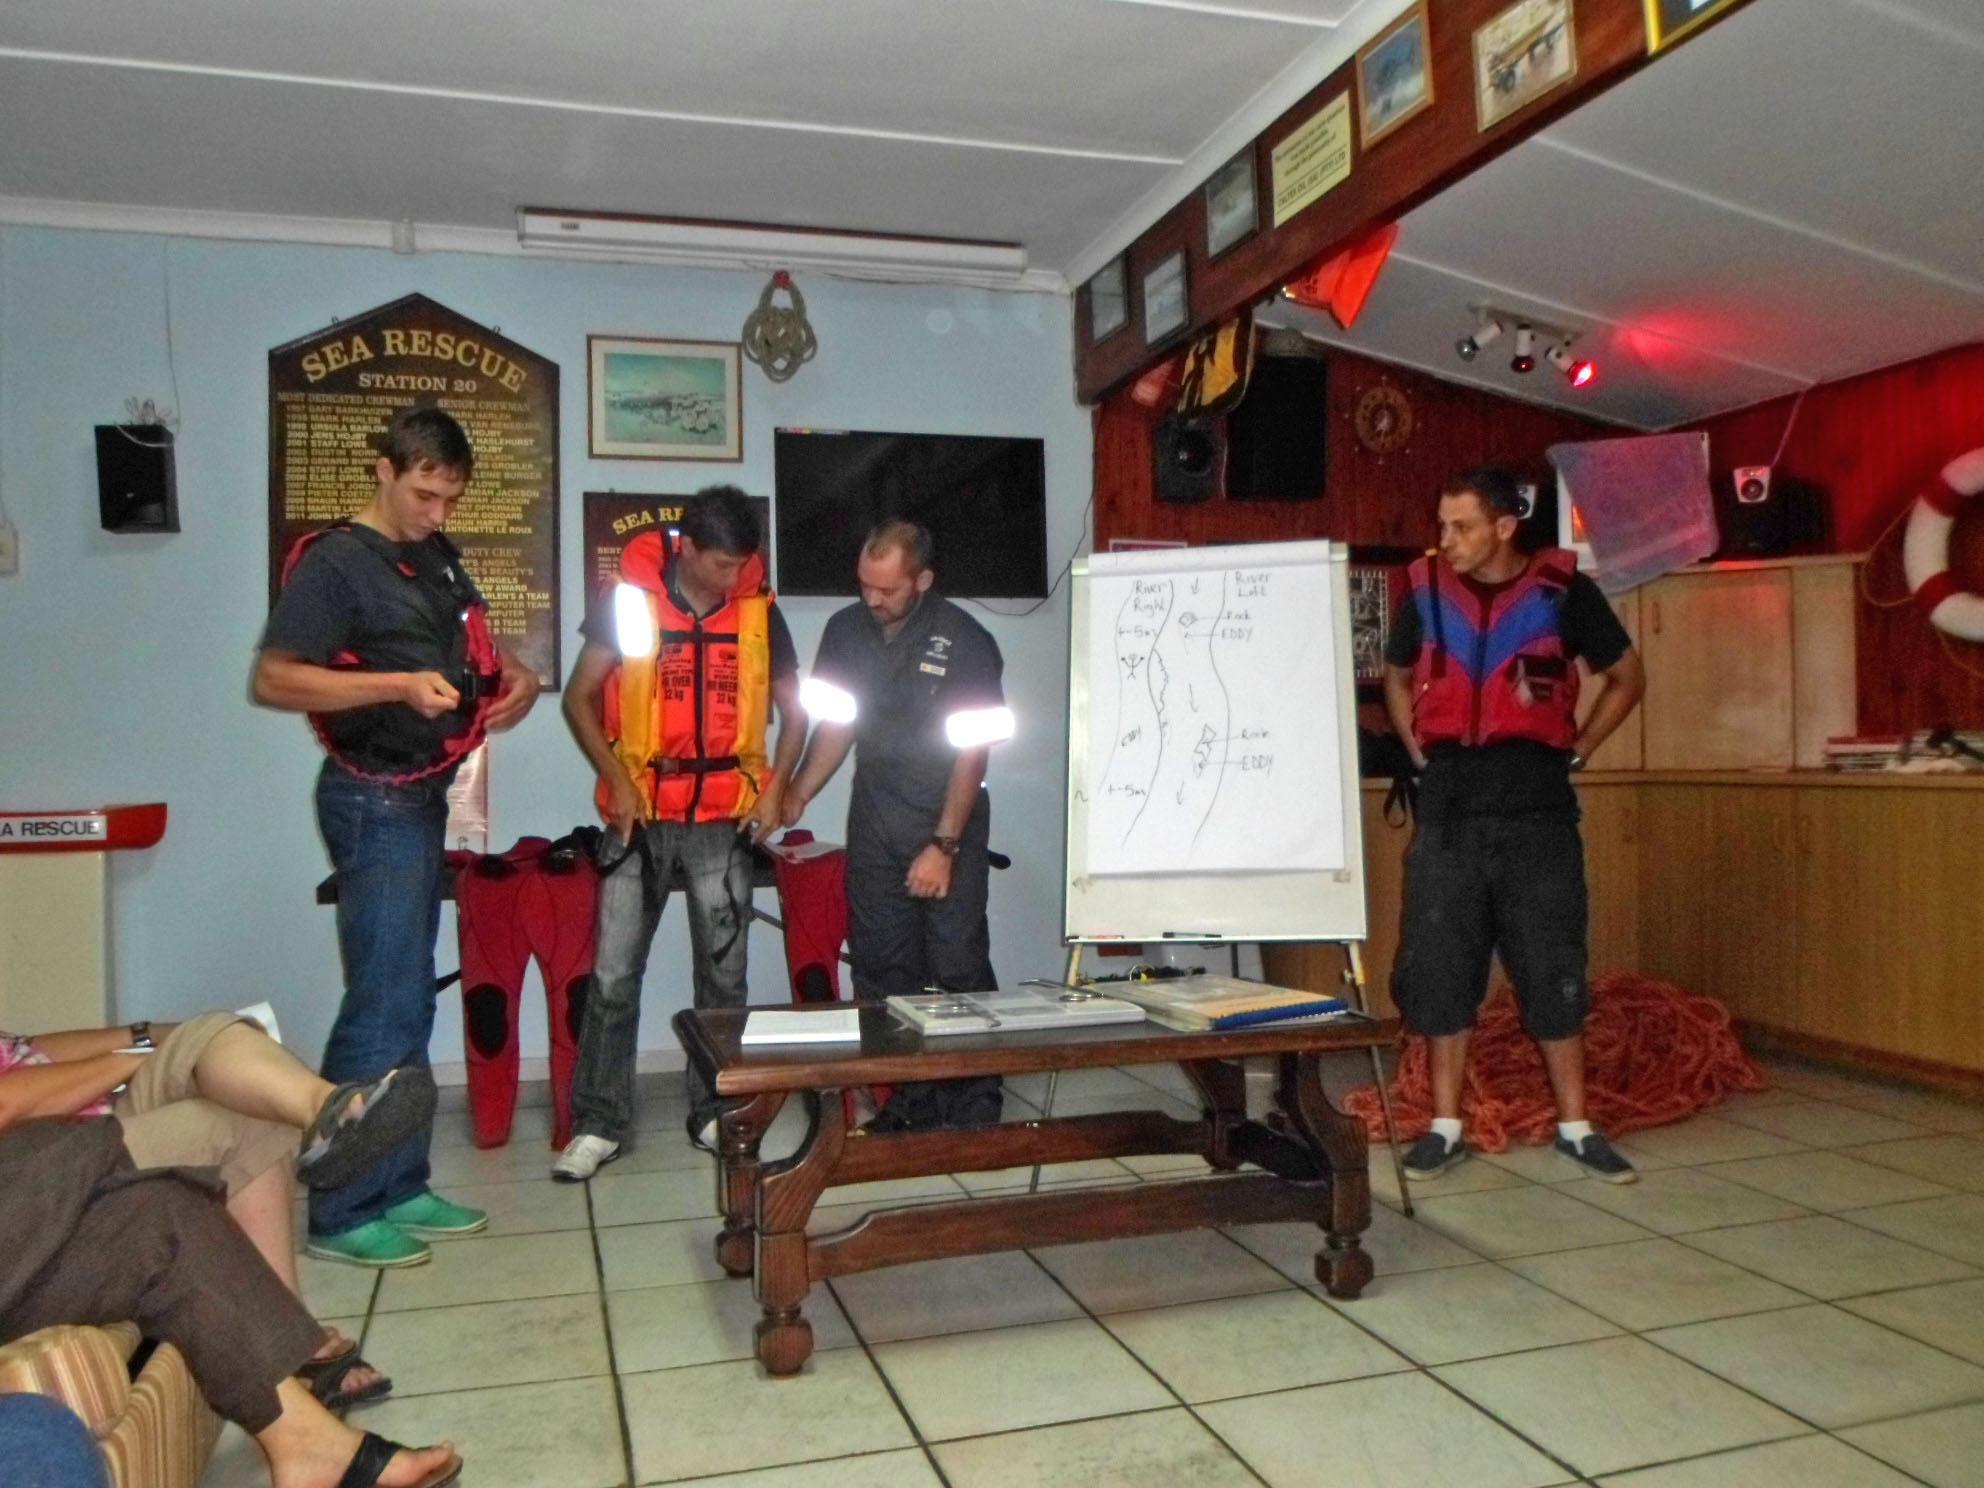 Duty Coxswain, Jerry Jackson, explains to trainees the difference between Personal Flotation Devices (PFDs) used in rivers and lifejackets used at sea. From left, Morne Beattie, Adriaan Devenage, Jerry Jackson and Jason Frewin.